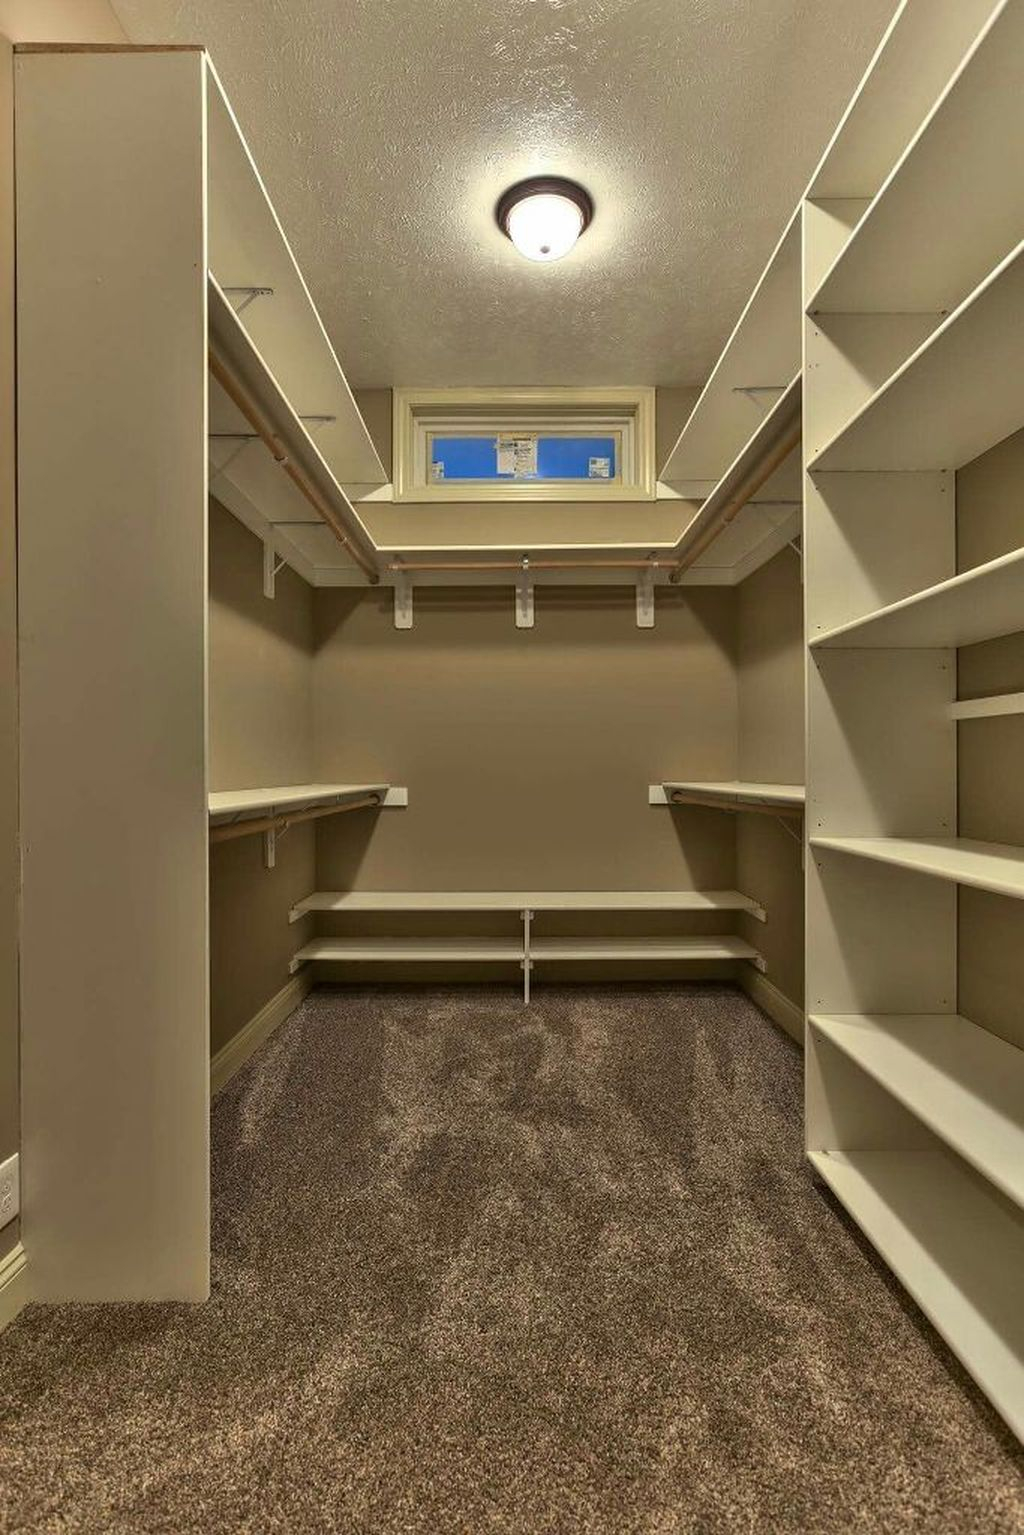 Splendid Wardrobe Design Ideas That You Can Try Current 11